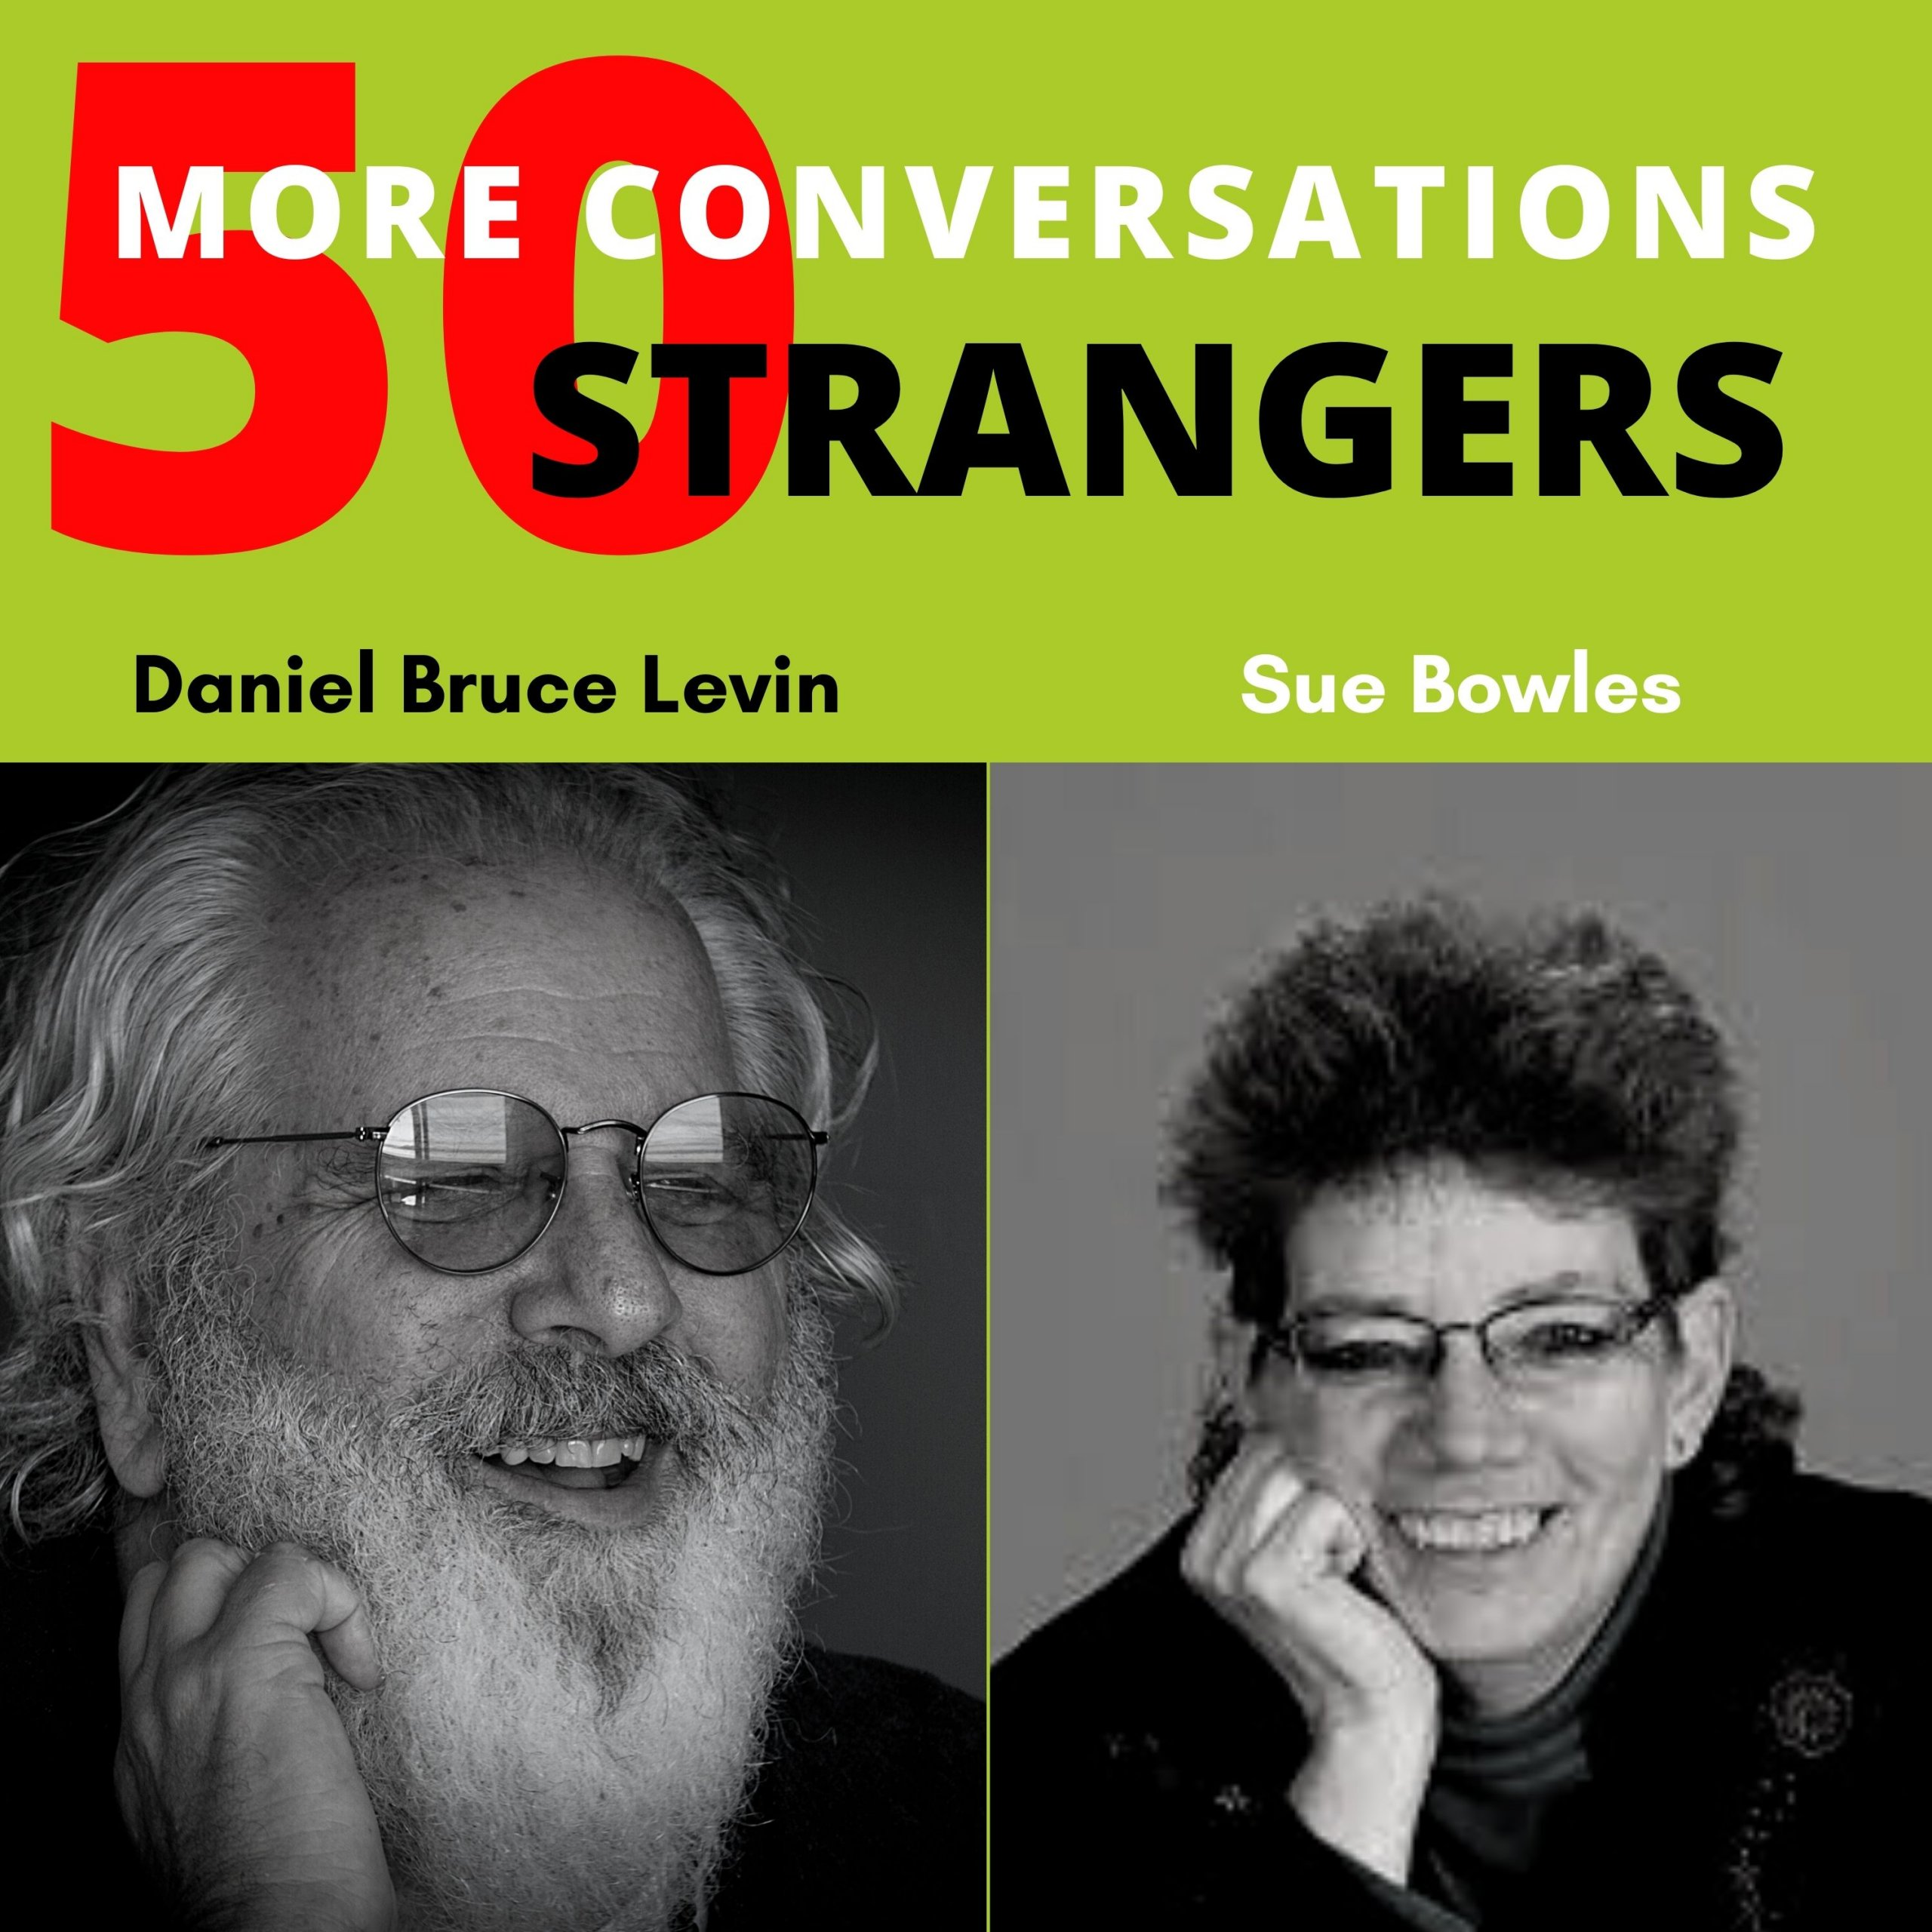 50 More Conversations with 50 More Strangers with Sue Bowles